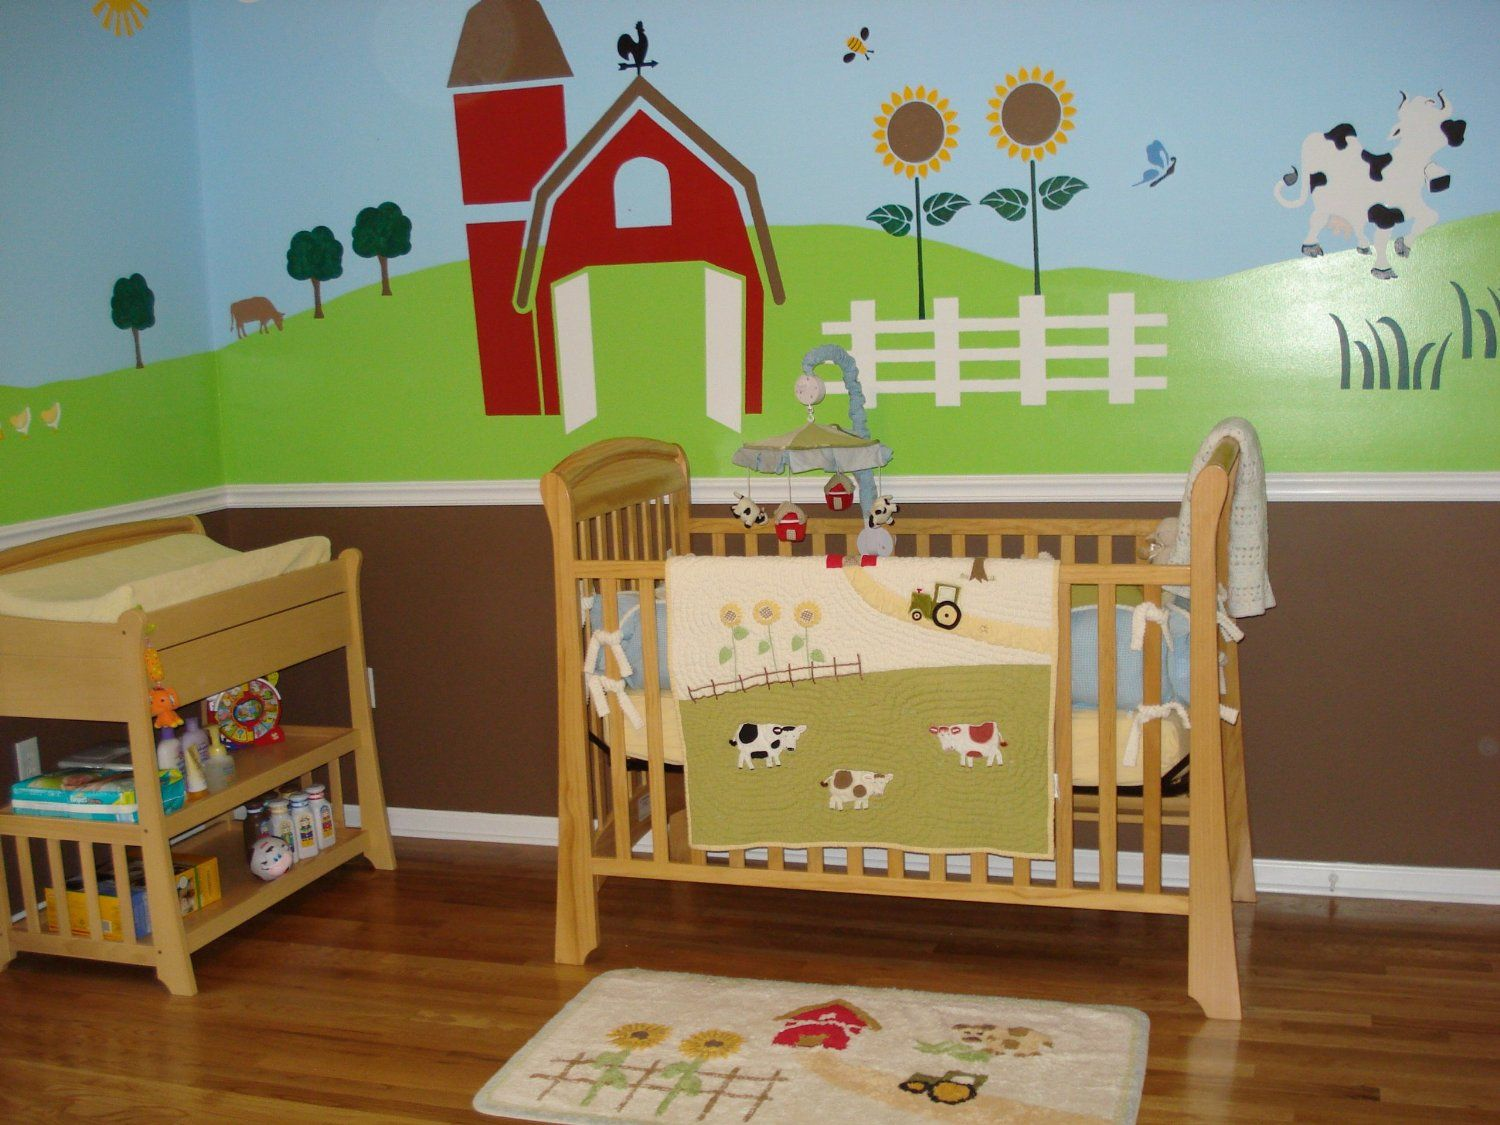 Amazon nursery wall mural farm animal wall mural stencil amazon nursery wall mural farm animal wall mural stencil kit for painting amipublicfo Choice Image